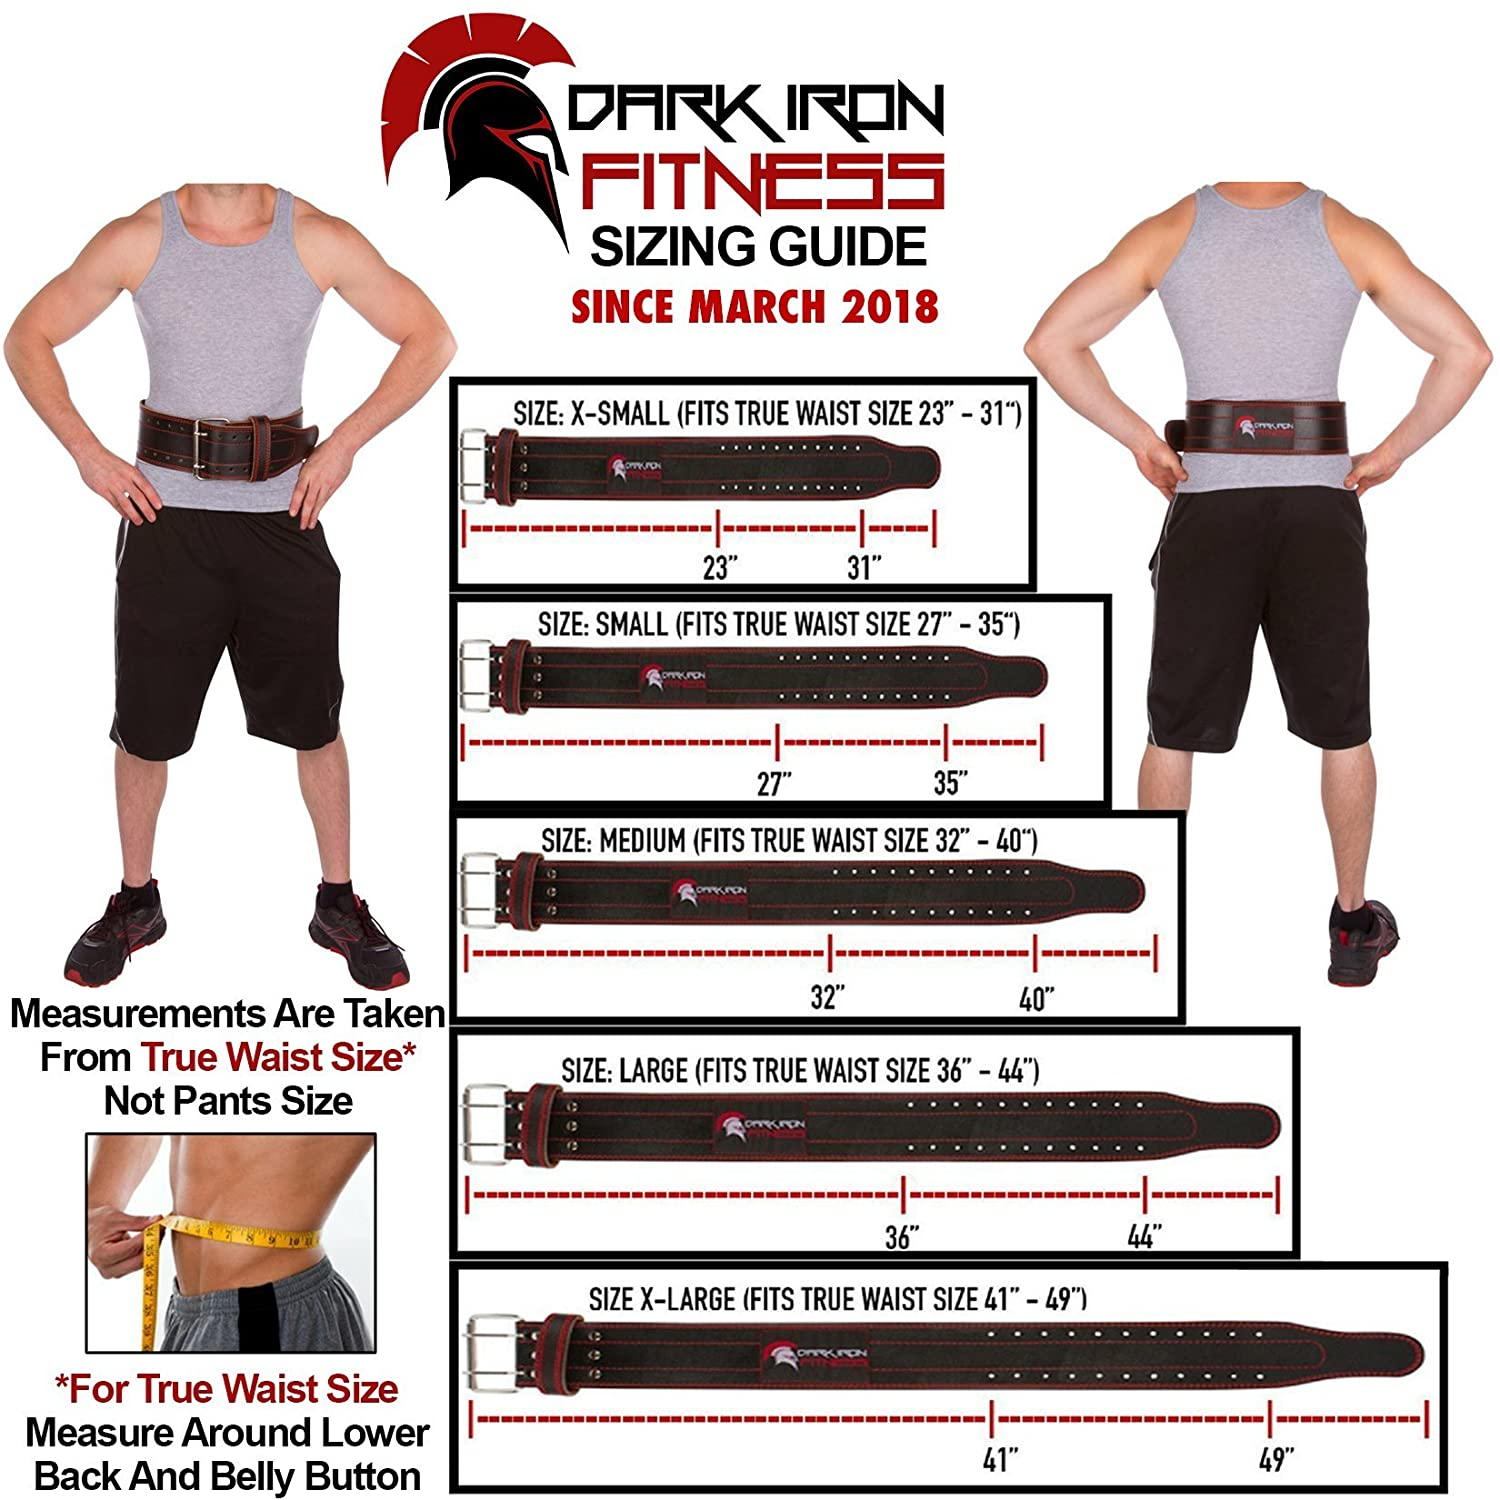 The Top 5 Best Olympic Barbells Worth Buying in 2018 - Dark Iron Fitness weightlifting belt